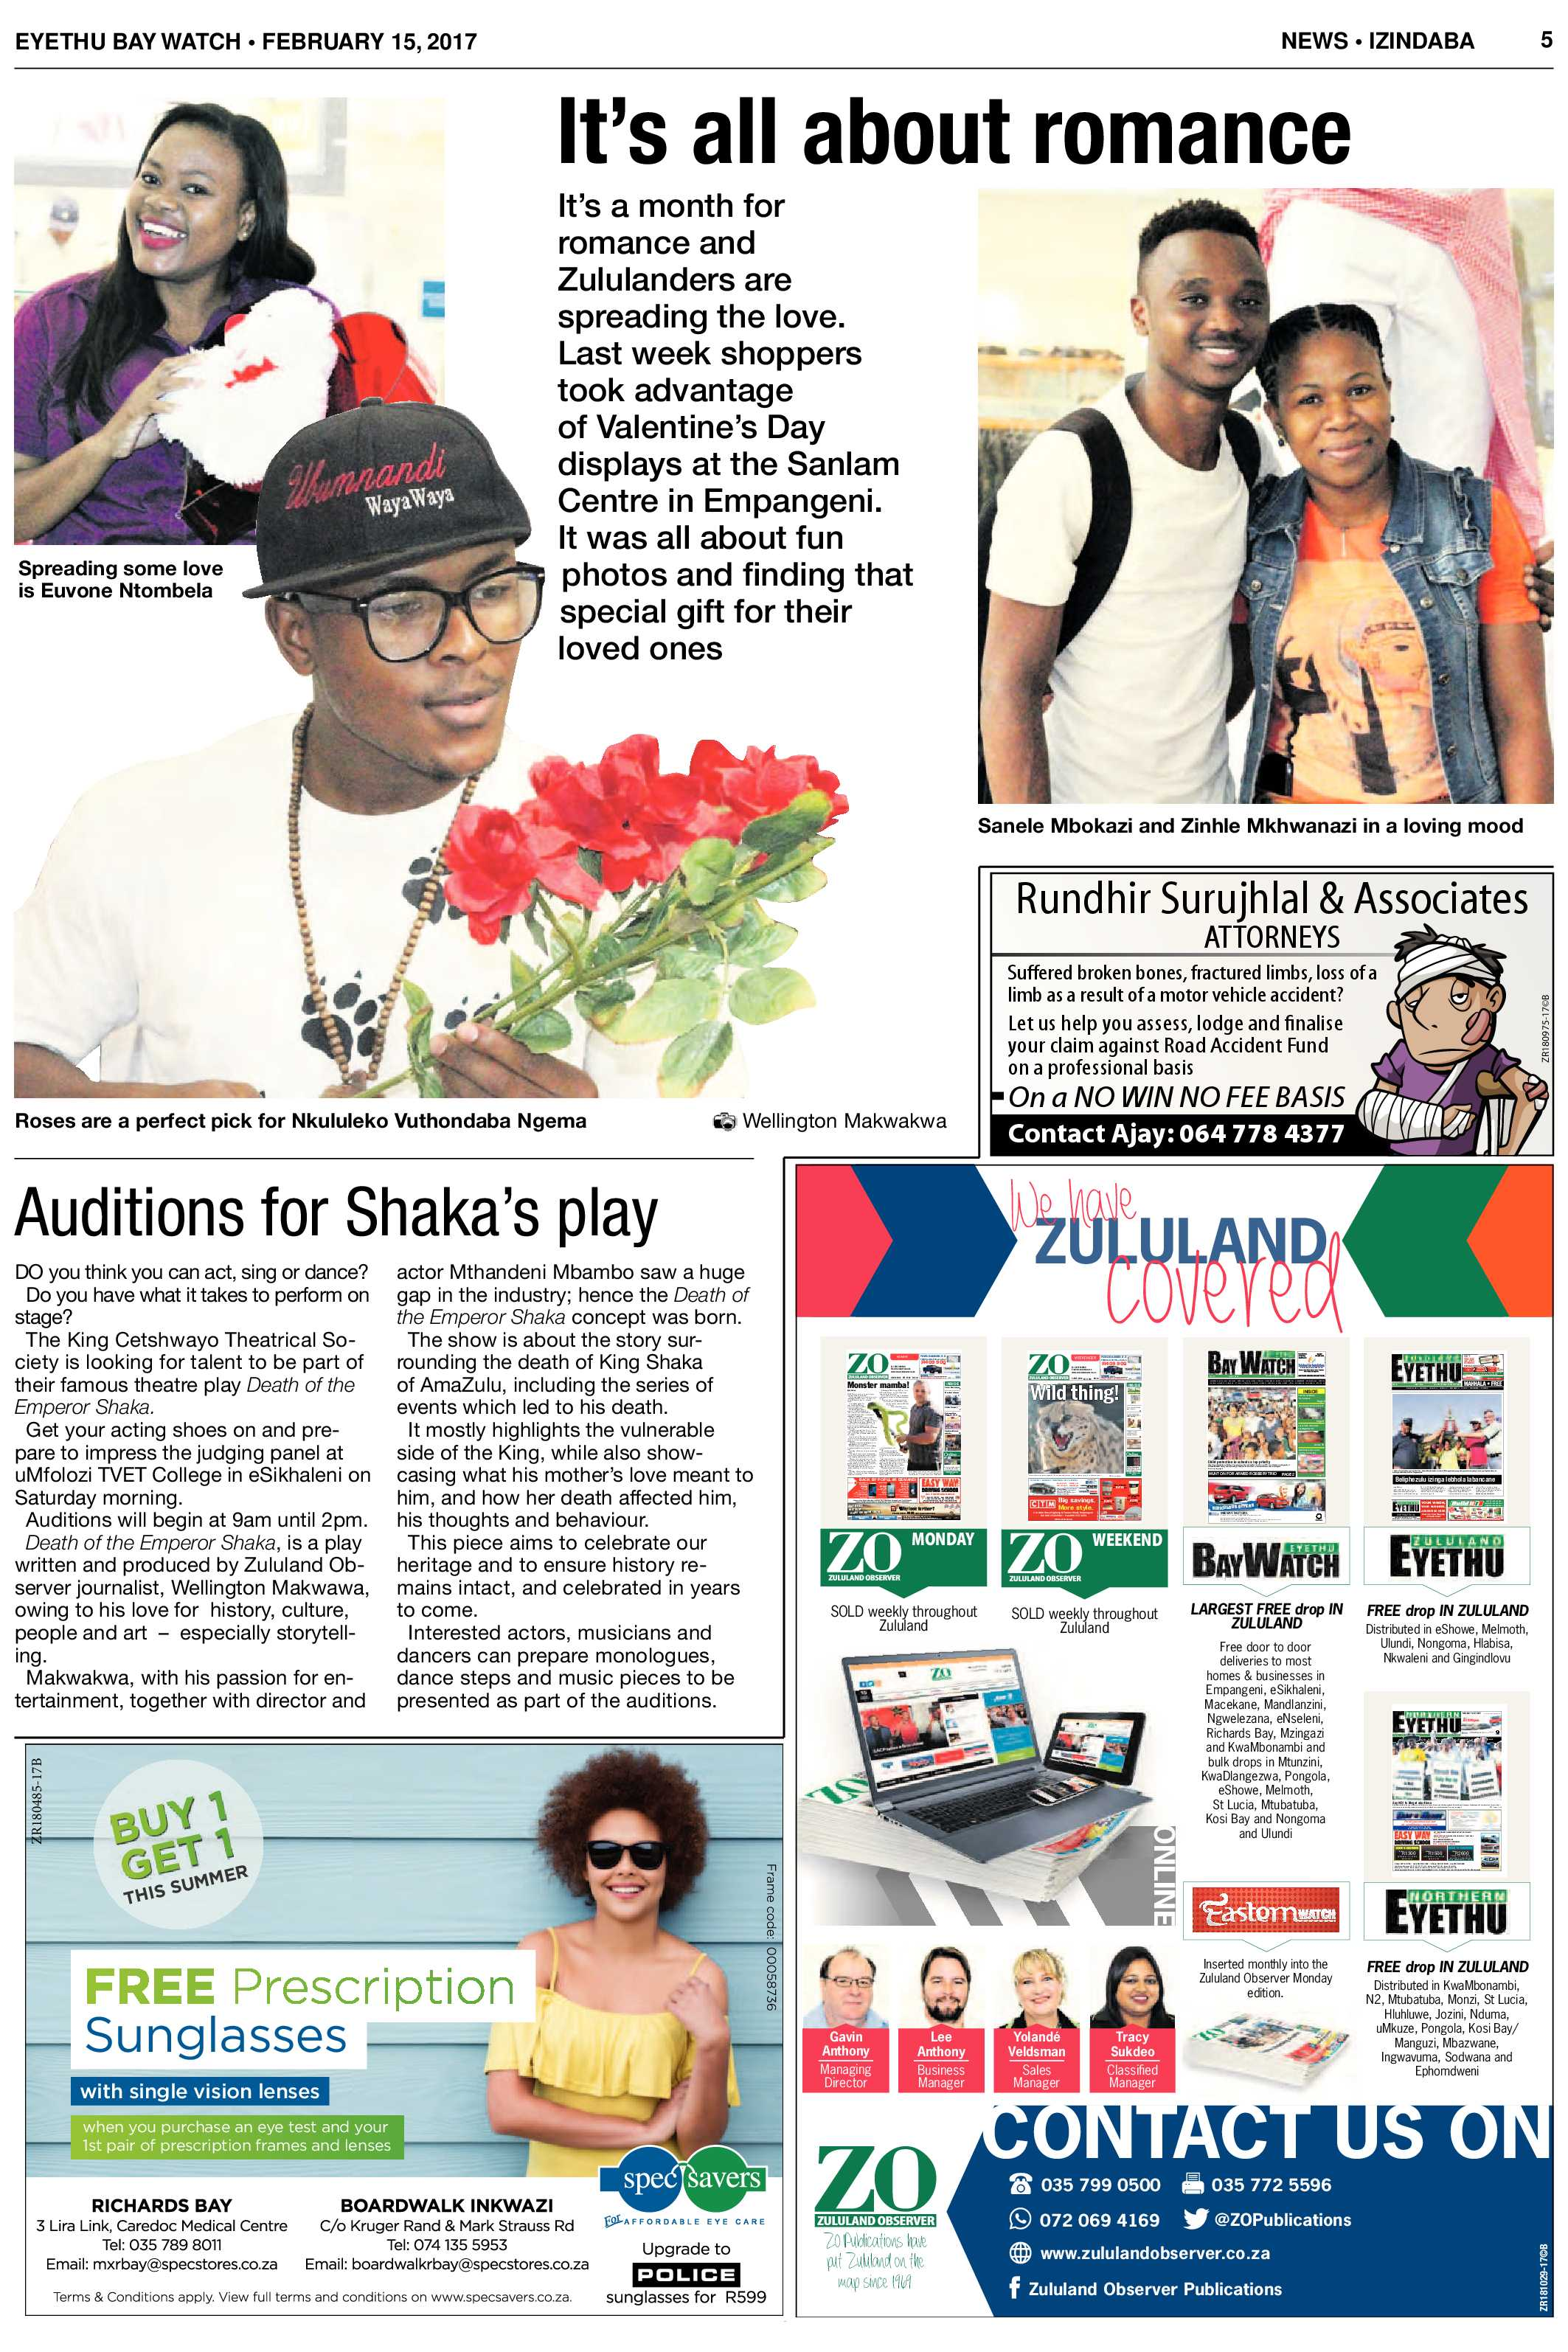 eyethu-baywatch-15-february-epapers-page-5